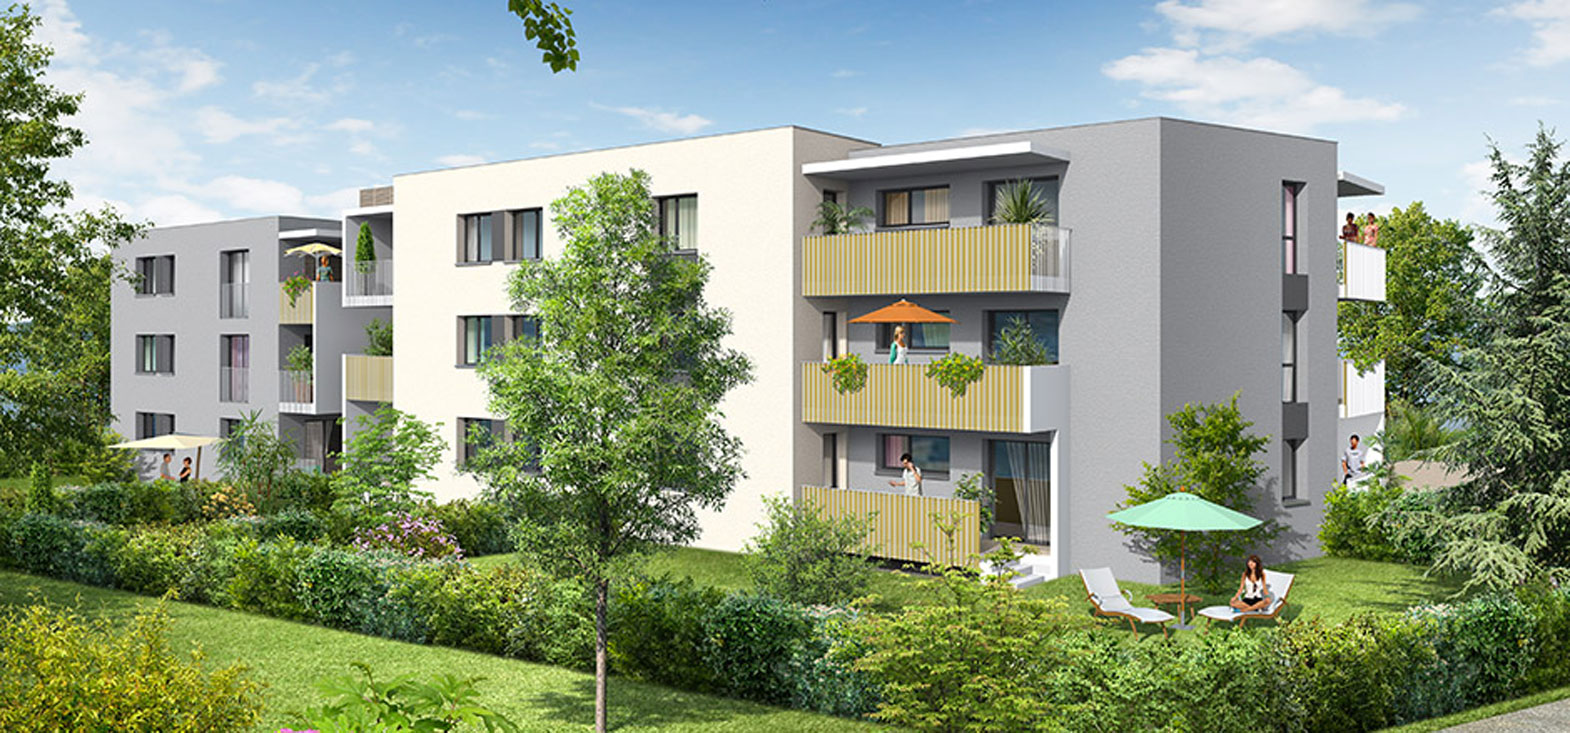 Les clos programme neuf reignier for Programme neuf